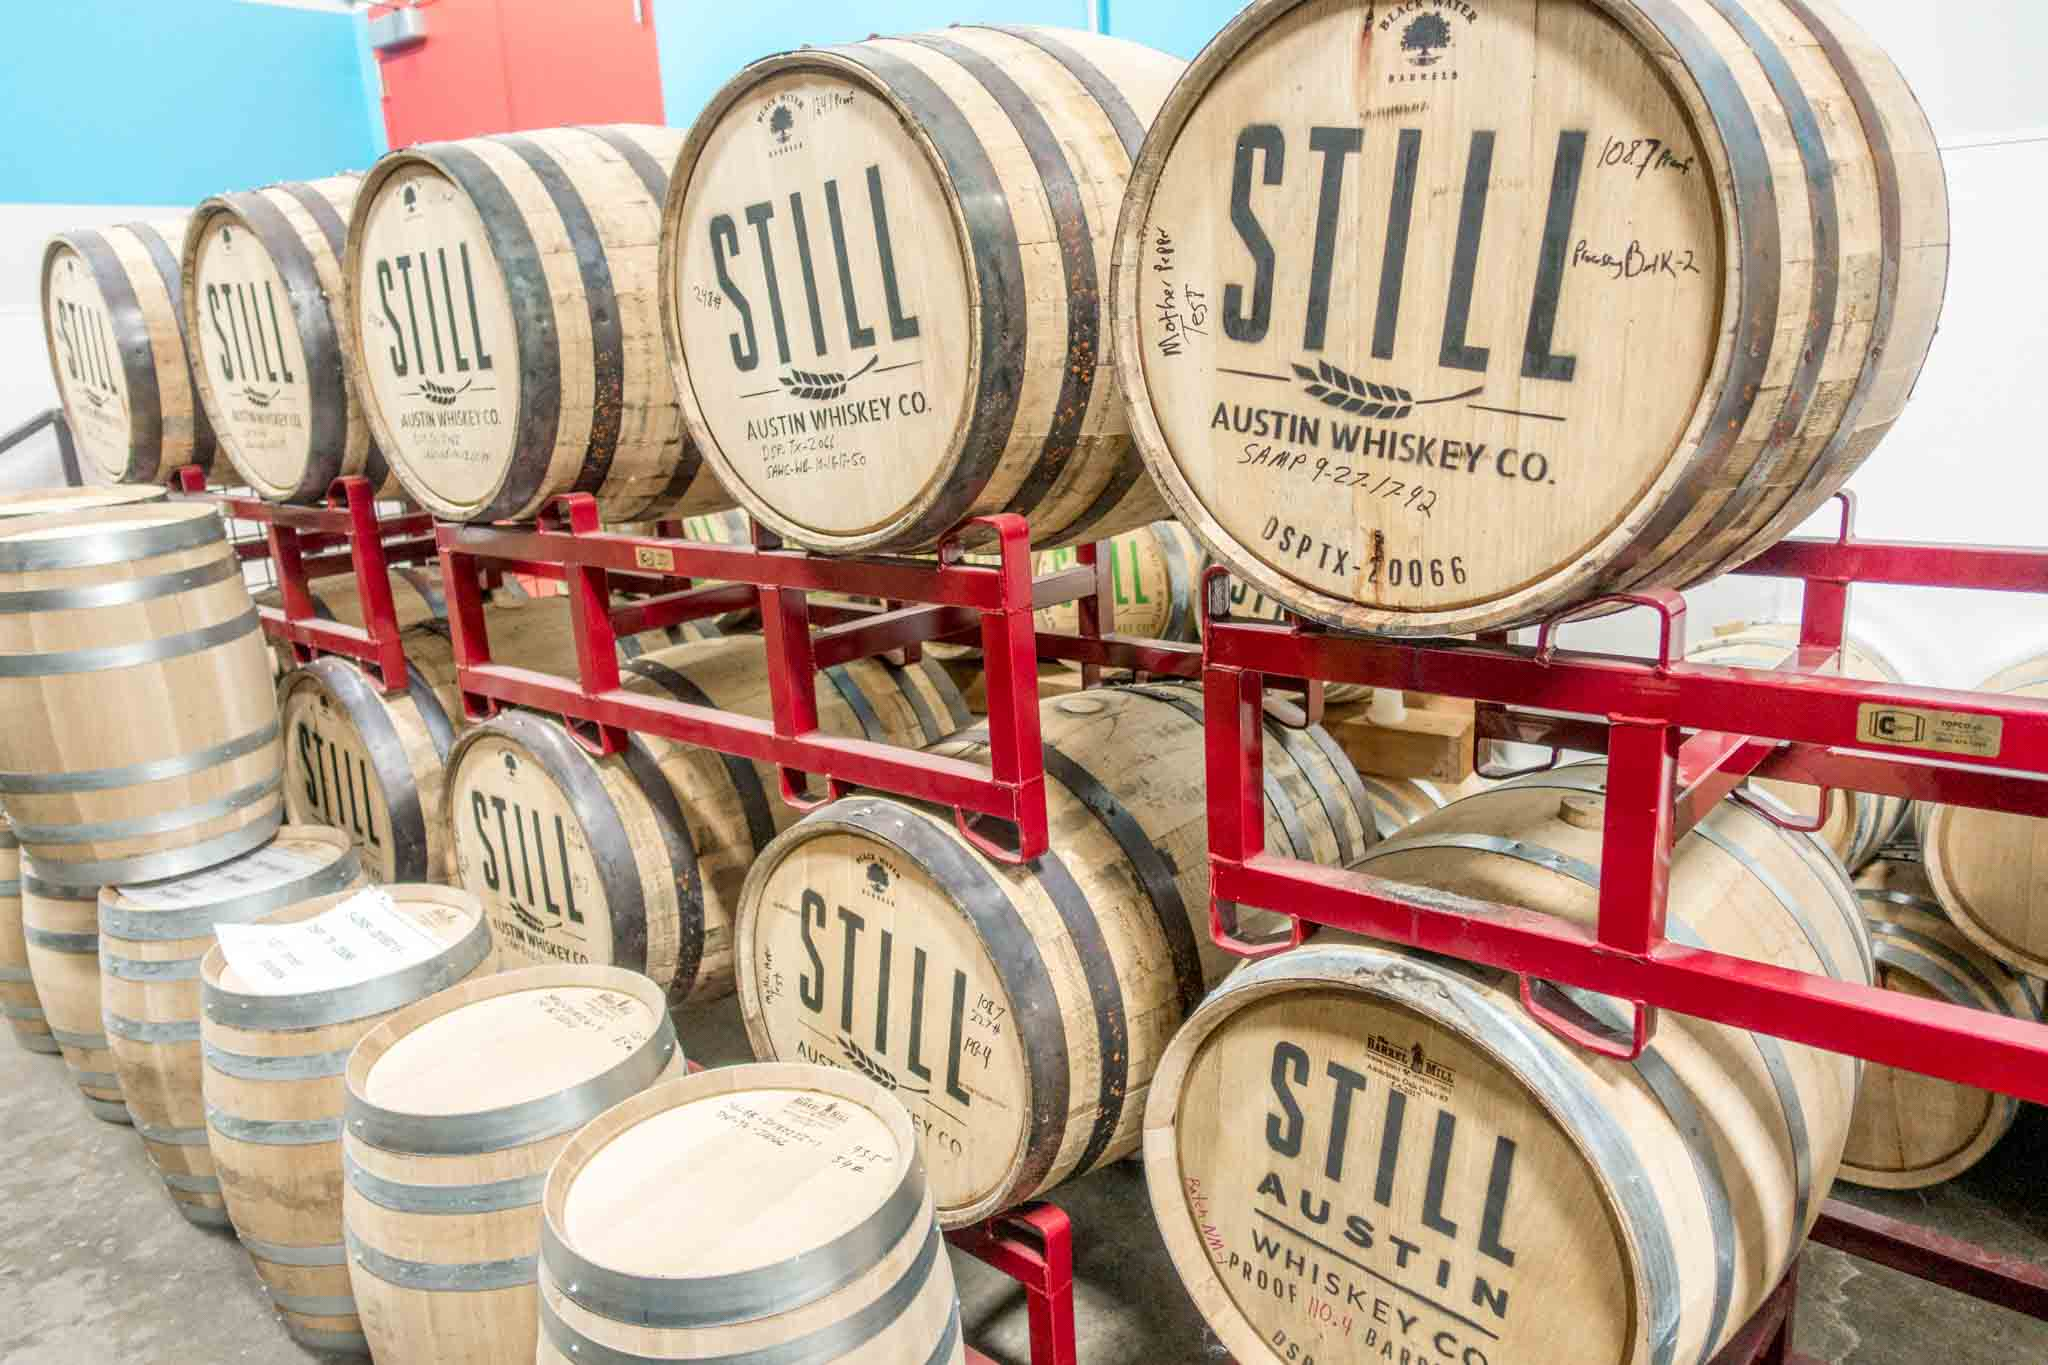 Barreled whiskeys at Still Austin